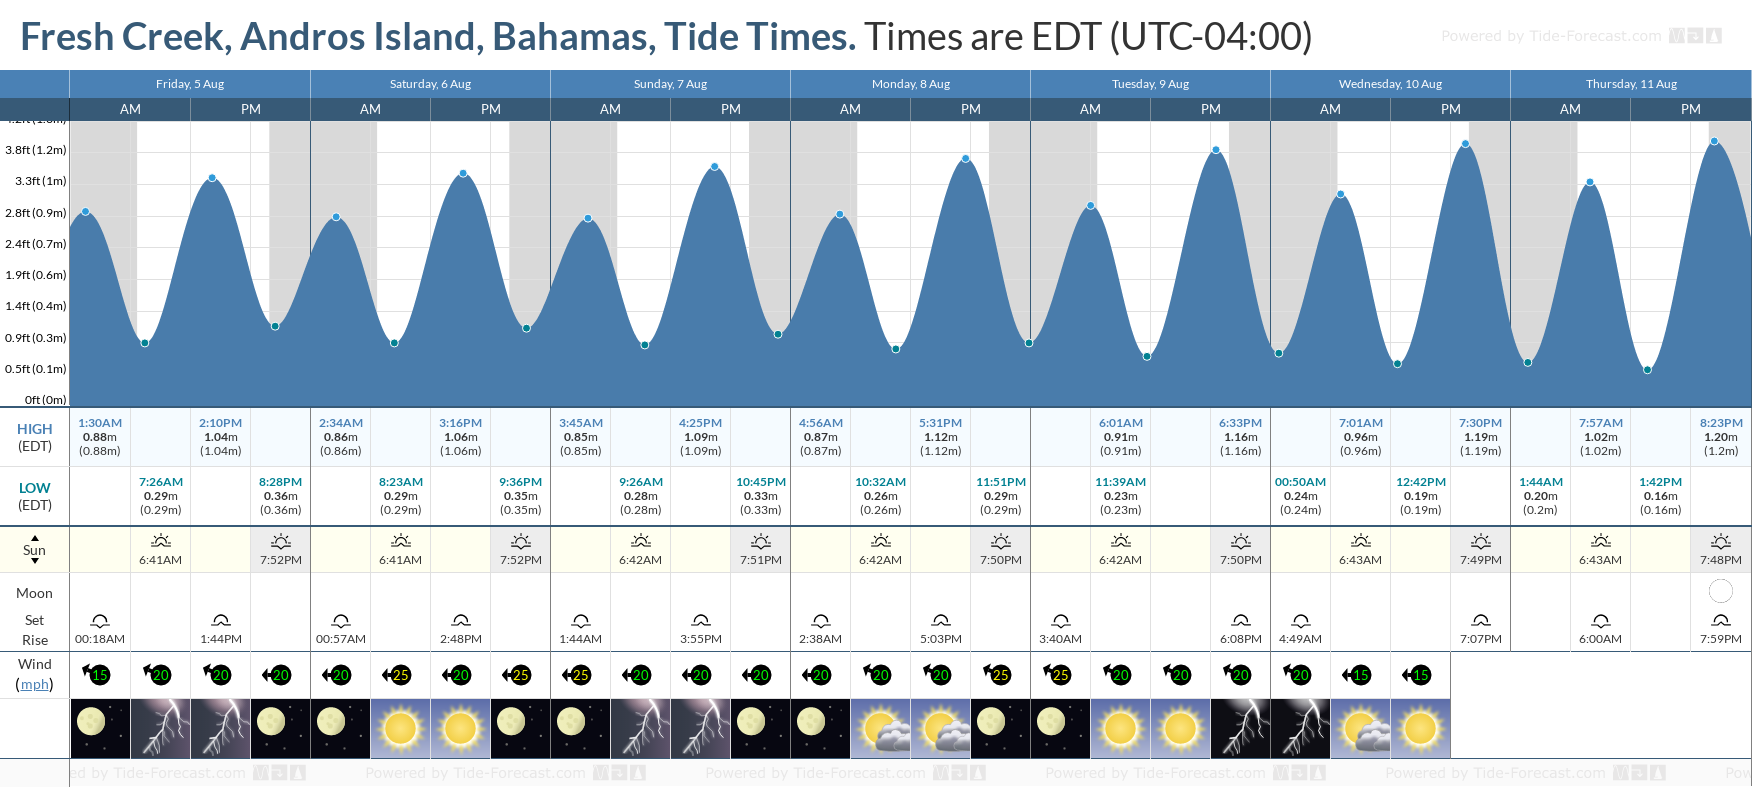 Fresh Creek, Andros Island, Bahamas Tide Chart including high and low tide tide times for the next 7 days